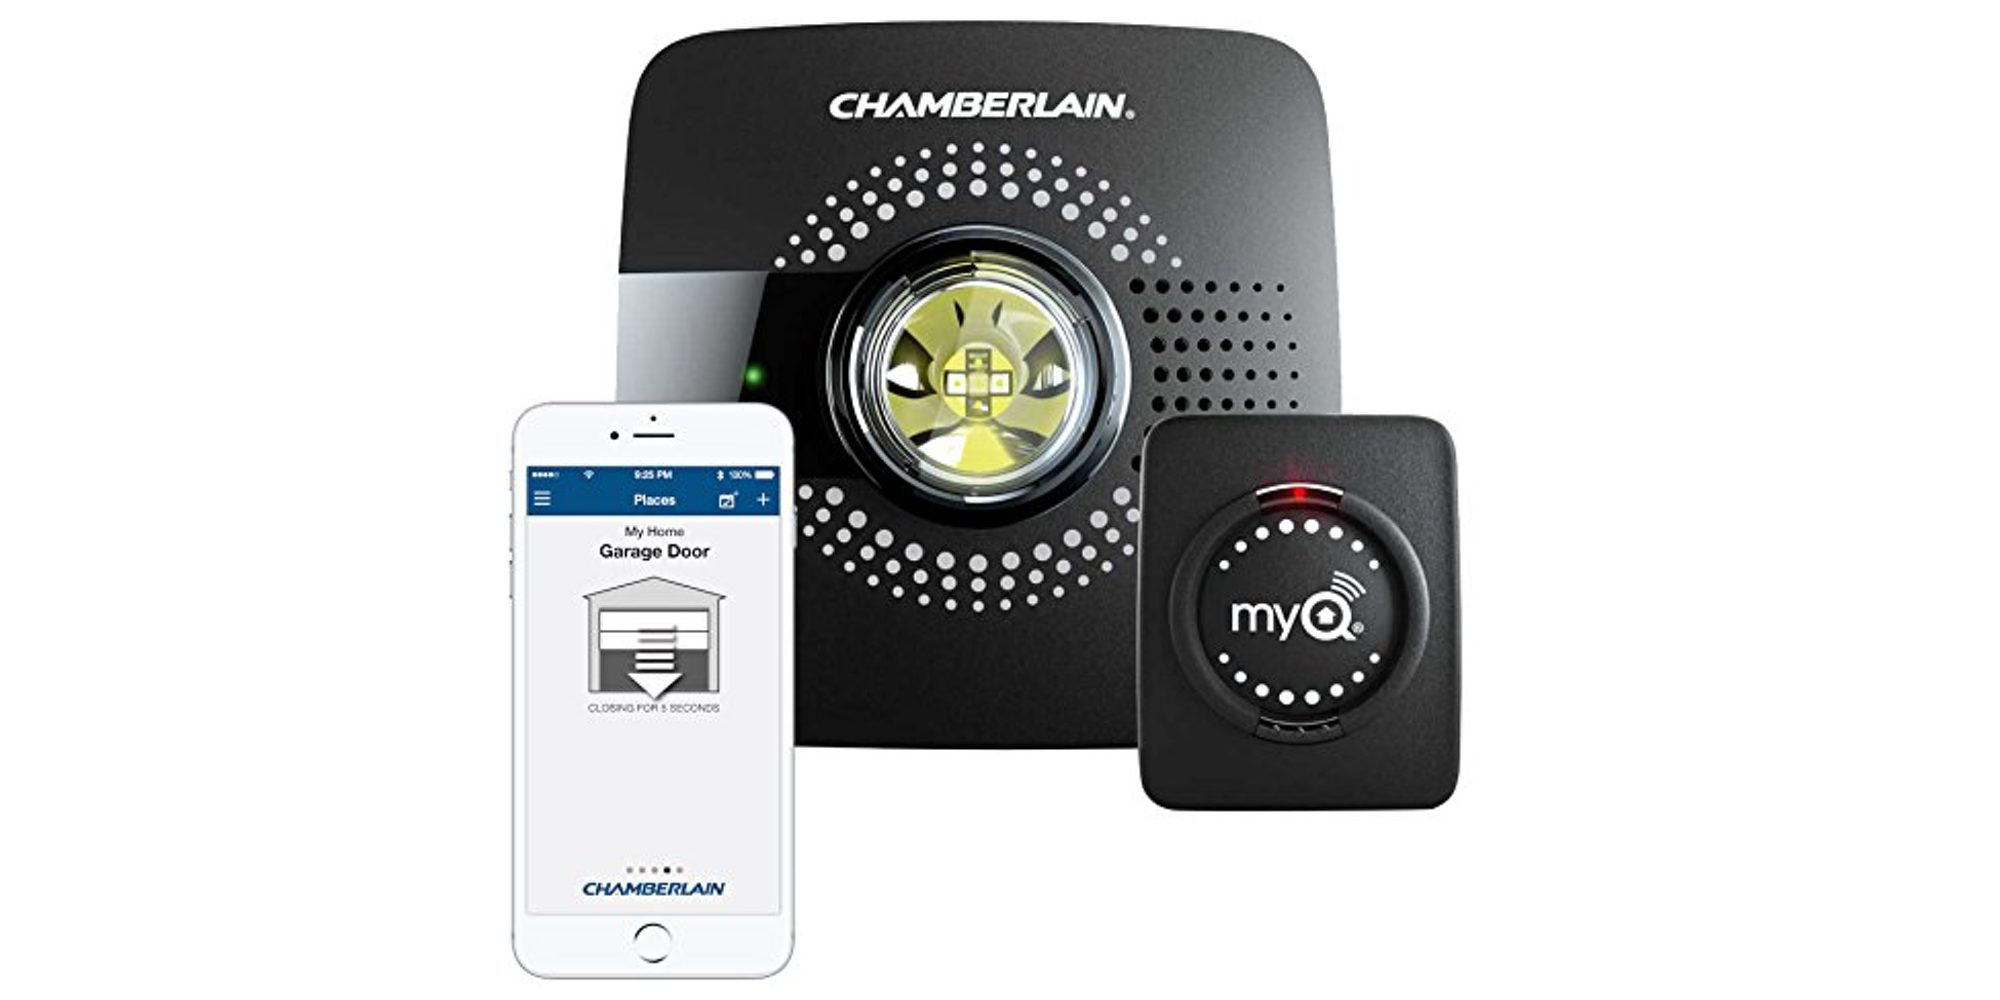 Chamberlain S Myq Hub Brings Smartphone Control To Your